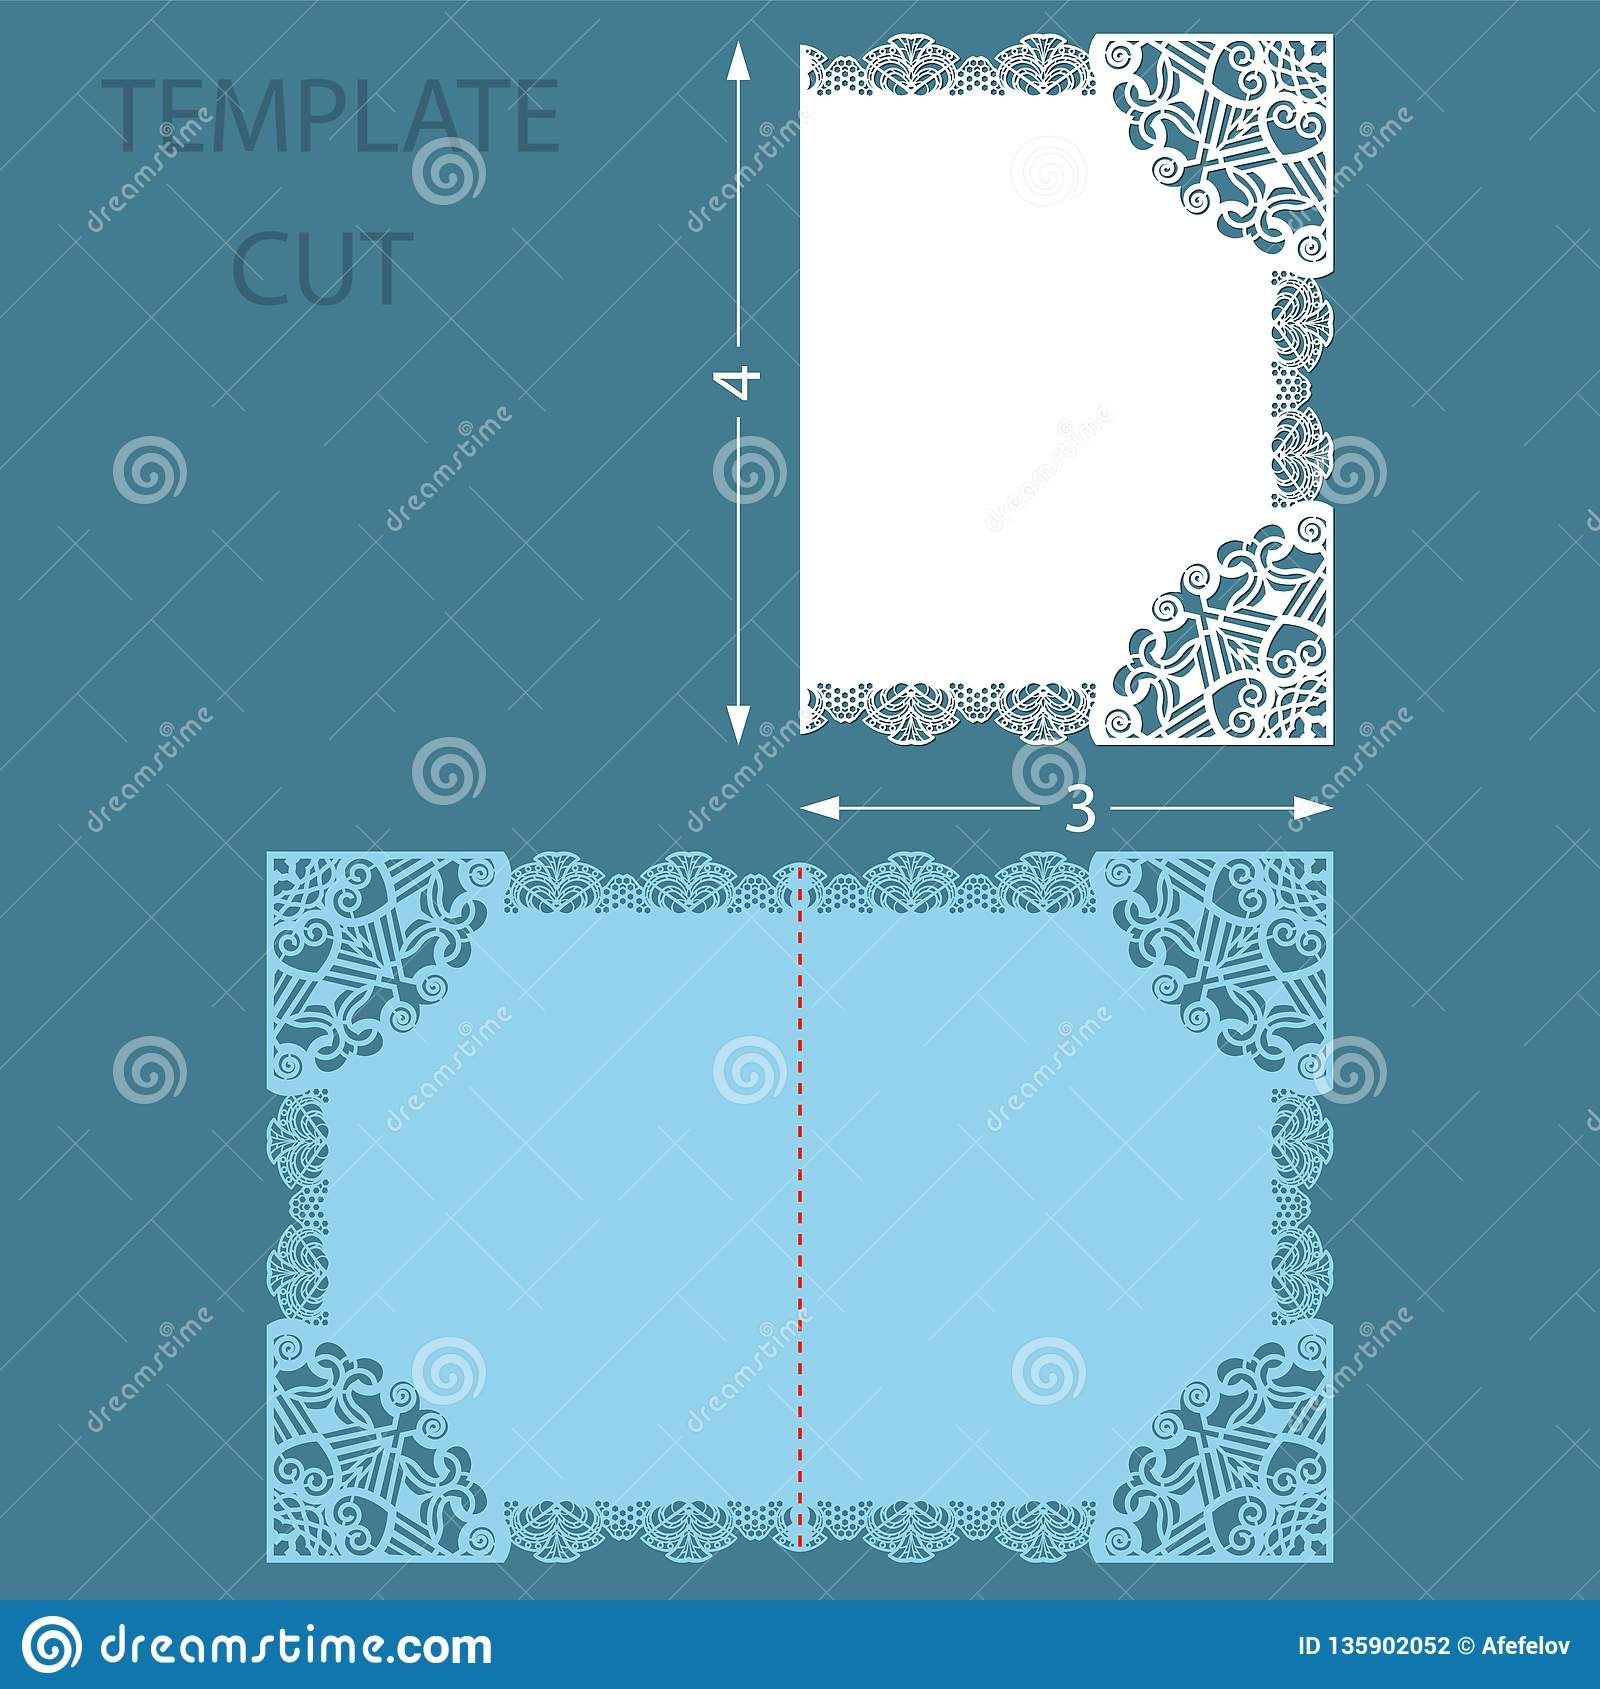 Template greeting congratulatory card with a decorative border on the edge. Wedding invitation laser cut. Cut out of paper card wi